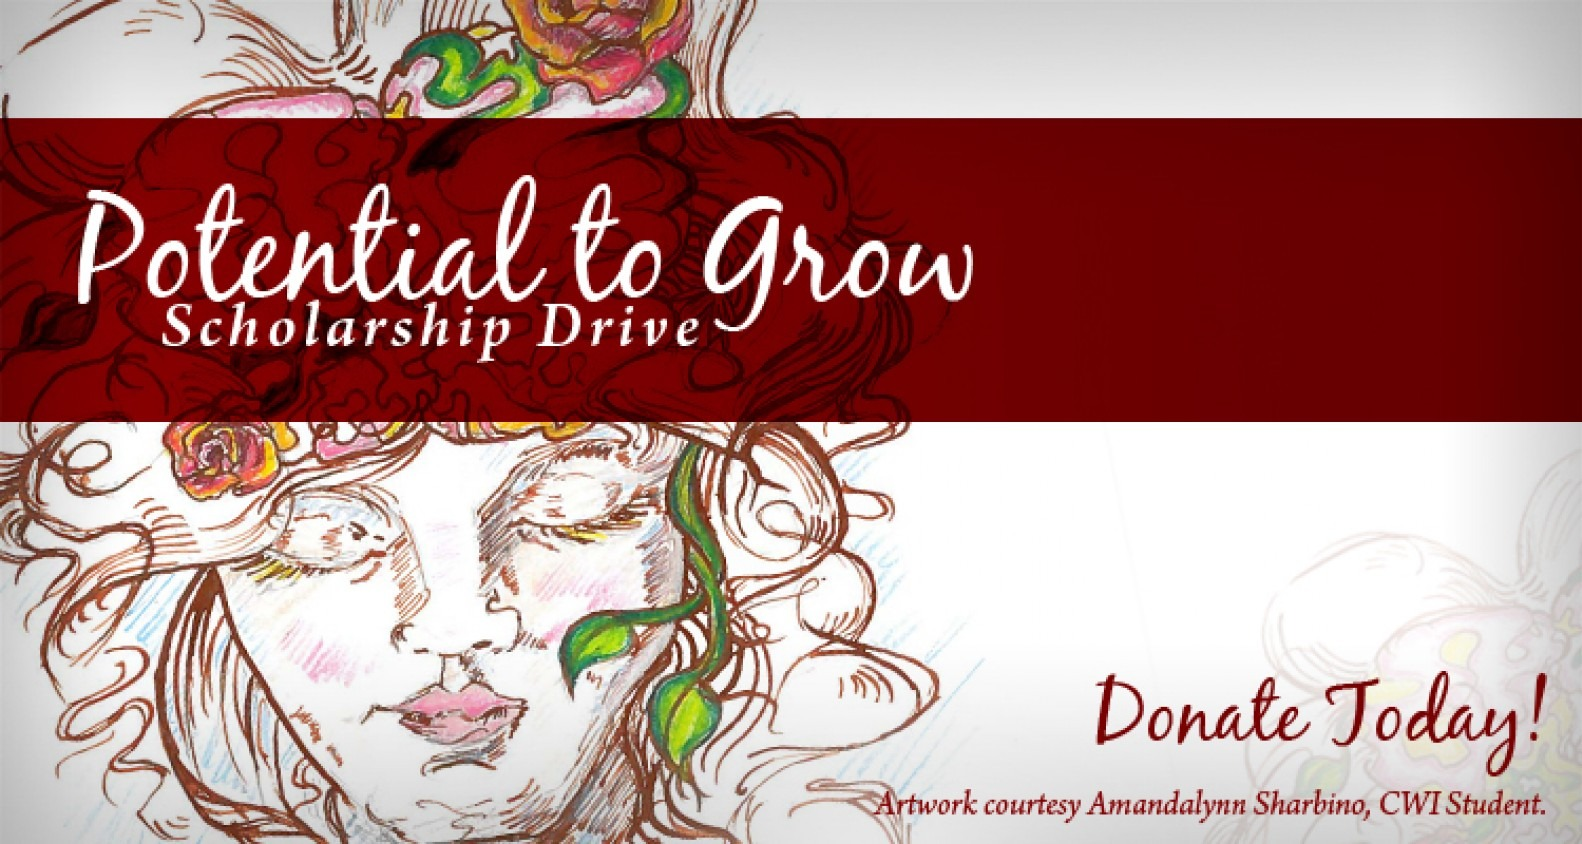 CWI Foundation Potential to Grow Scholarship Drive, Artwork courtesy Amandalynn Sharbino